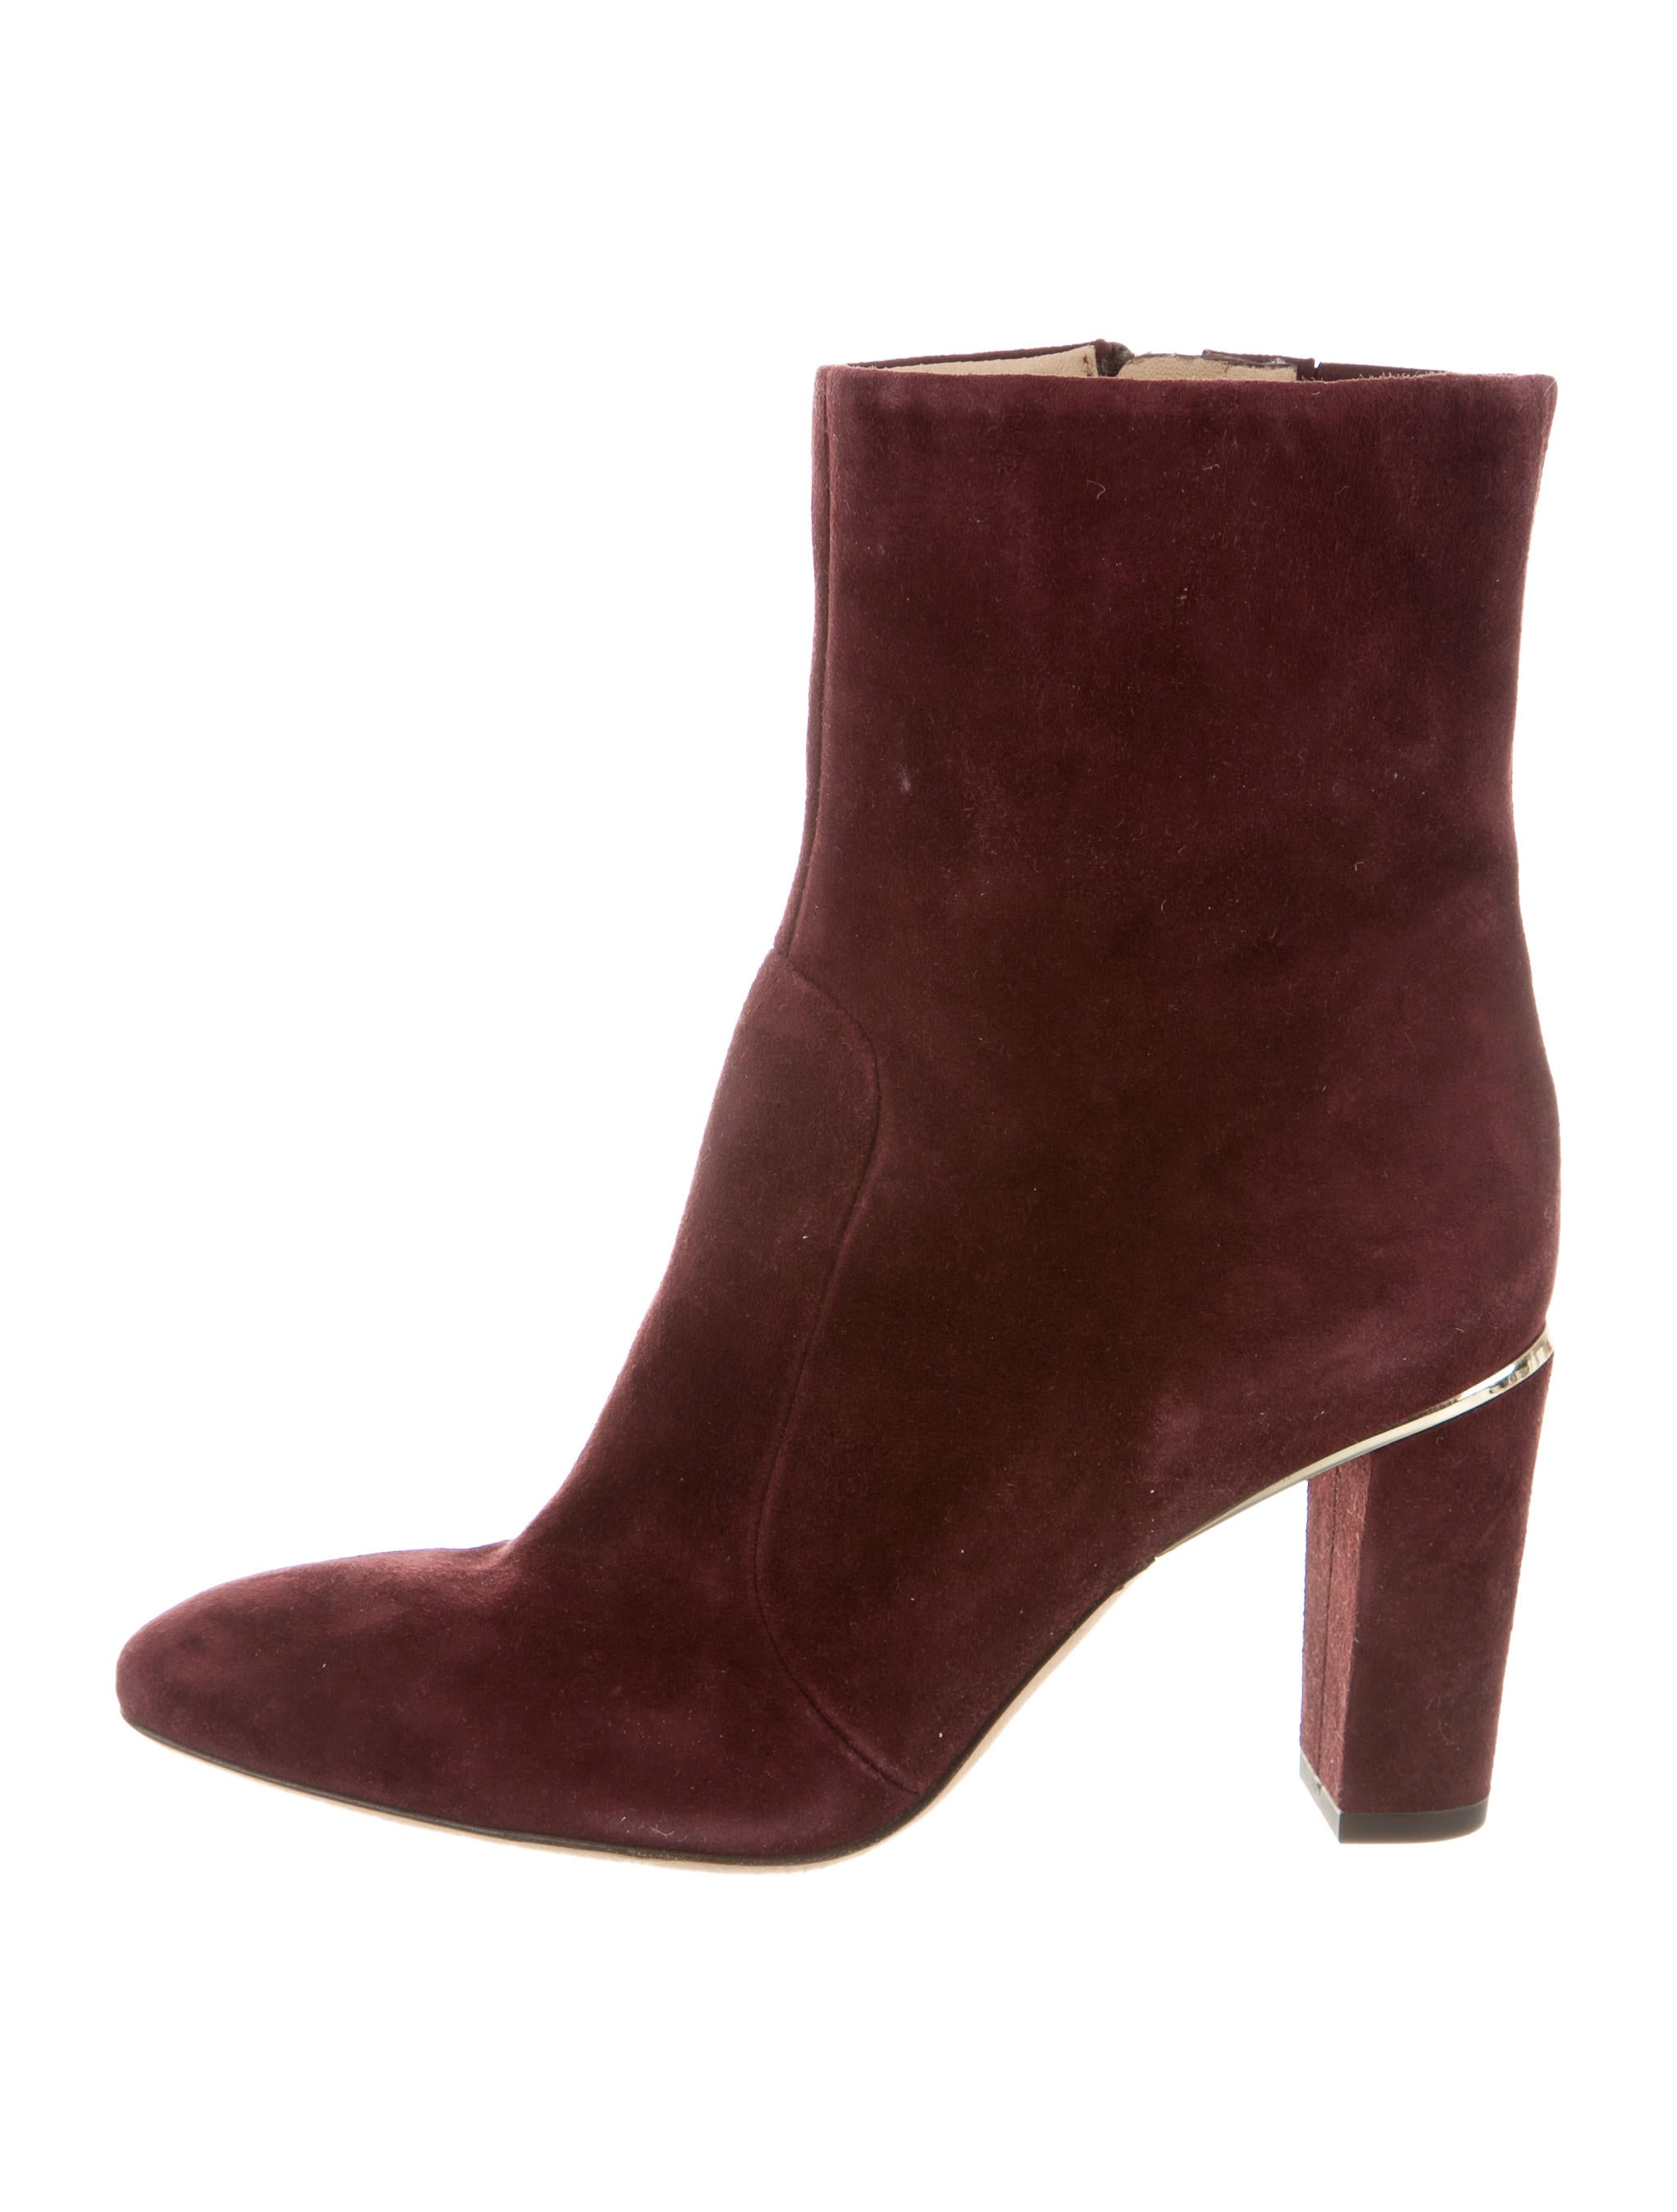 b brian atwood suede ankle boots shoes wbn21777 the